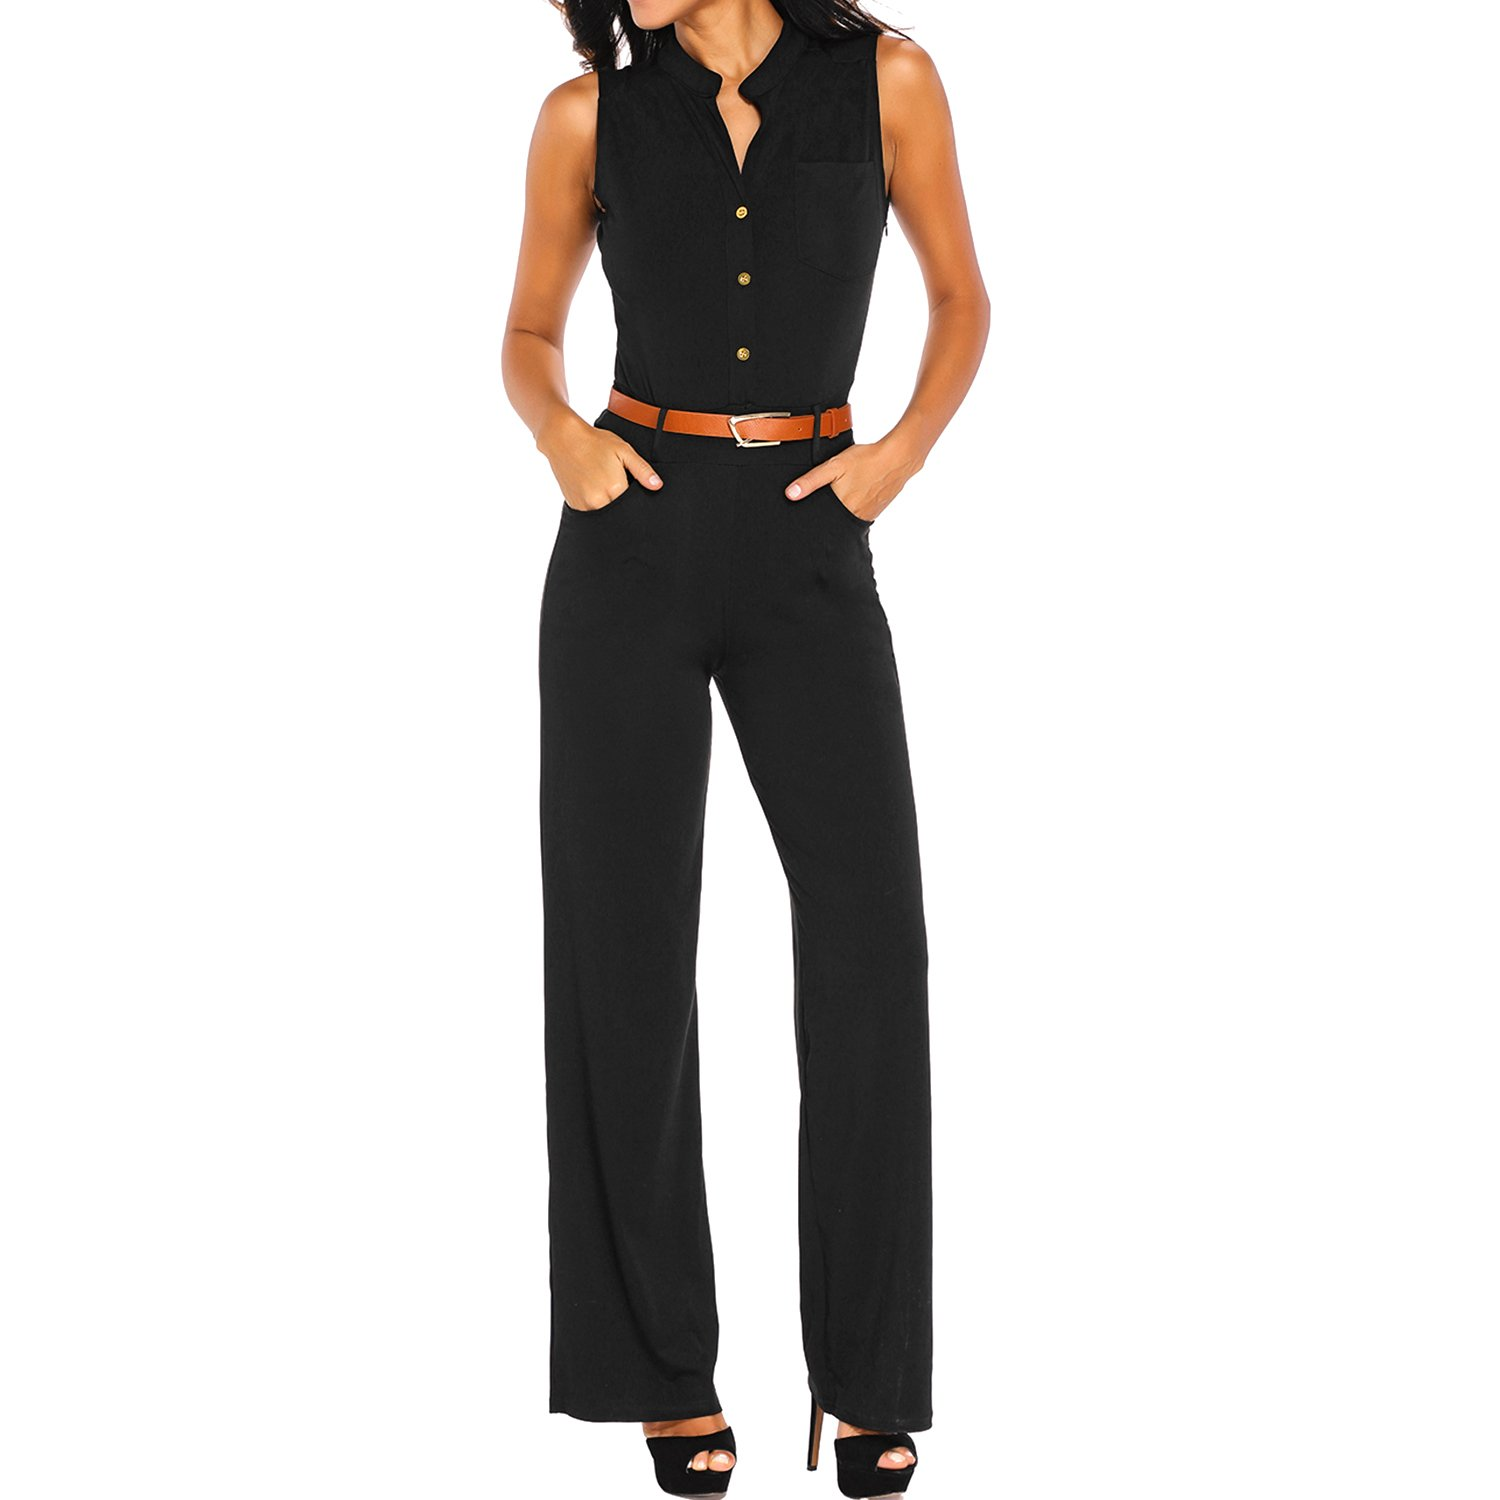 878434025d8c Luxspire Women s Loose Wide-legged Palazzo Pants One Piece Sleeveless Waist  Belted Jumpsuit